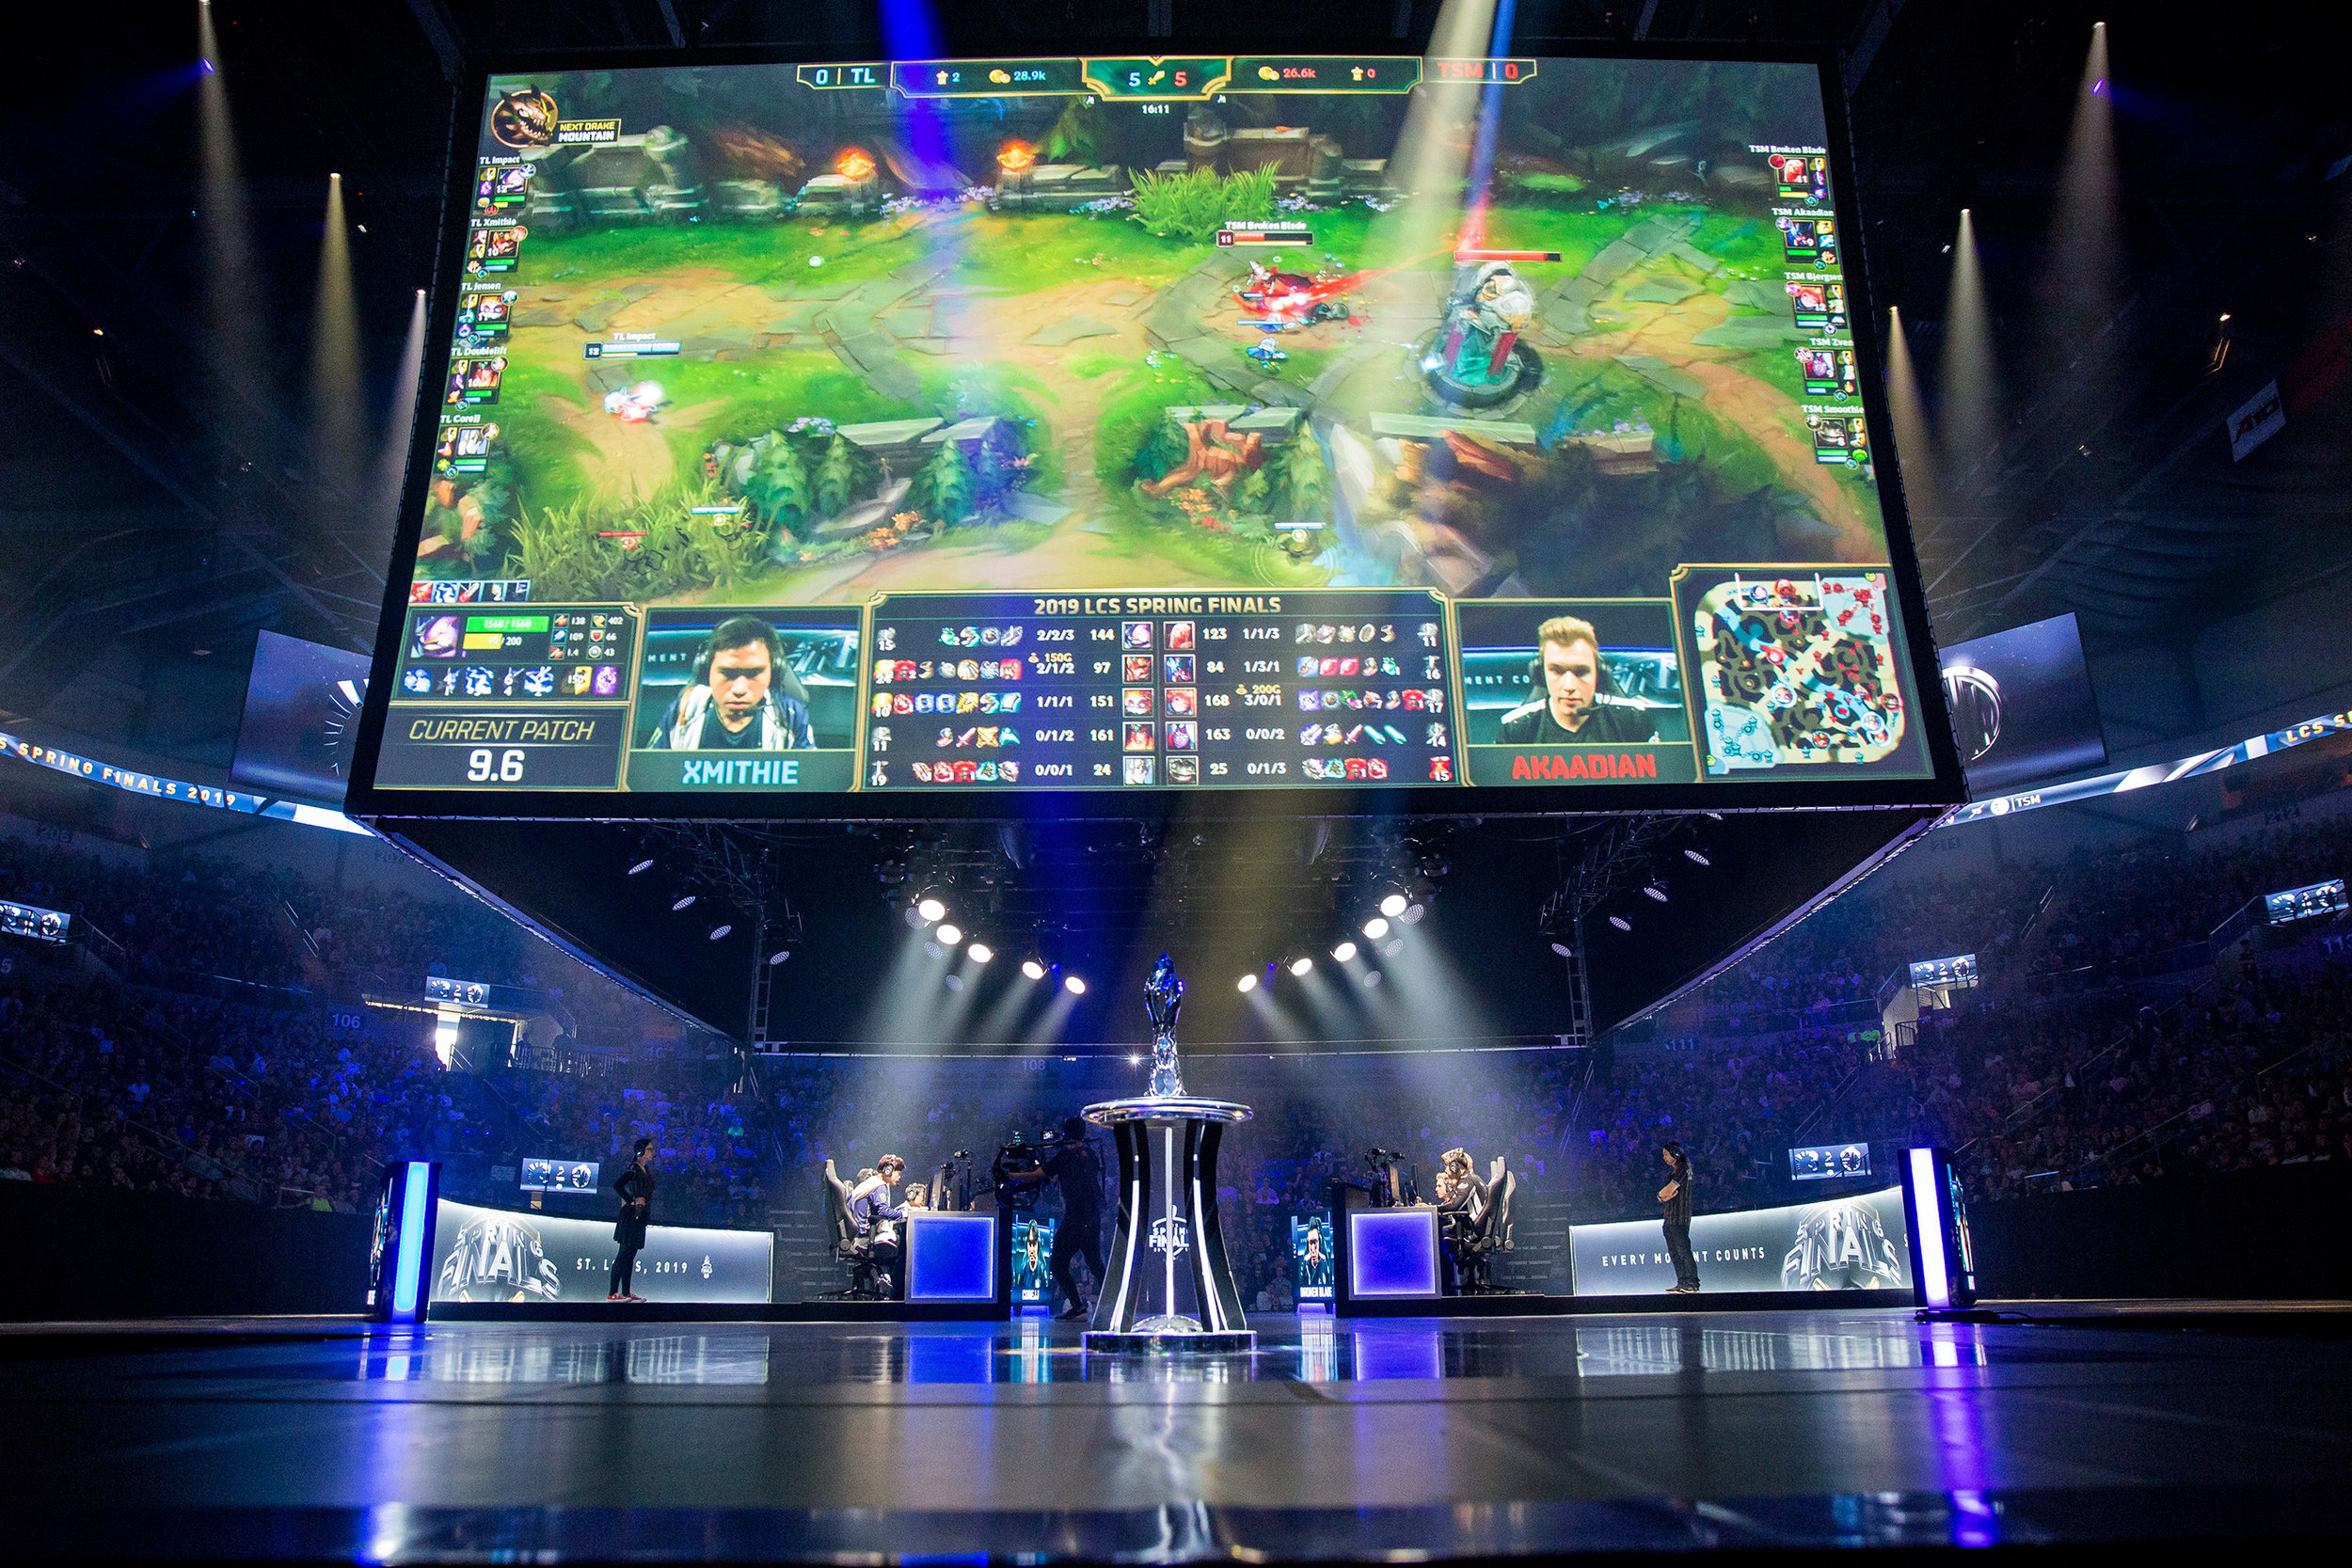 ST LOUIS, MO - APRIL 13: Full stage with screen and trophy at LCS Spring Finals at Chaifetz Arena on April 13, 2019 in St Louis, Missouri. Photo by David Doran/ESPAT Media